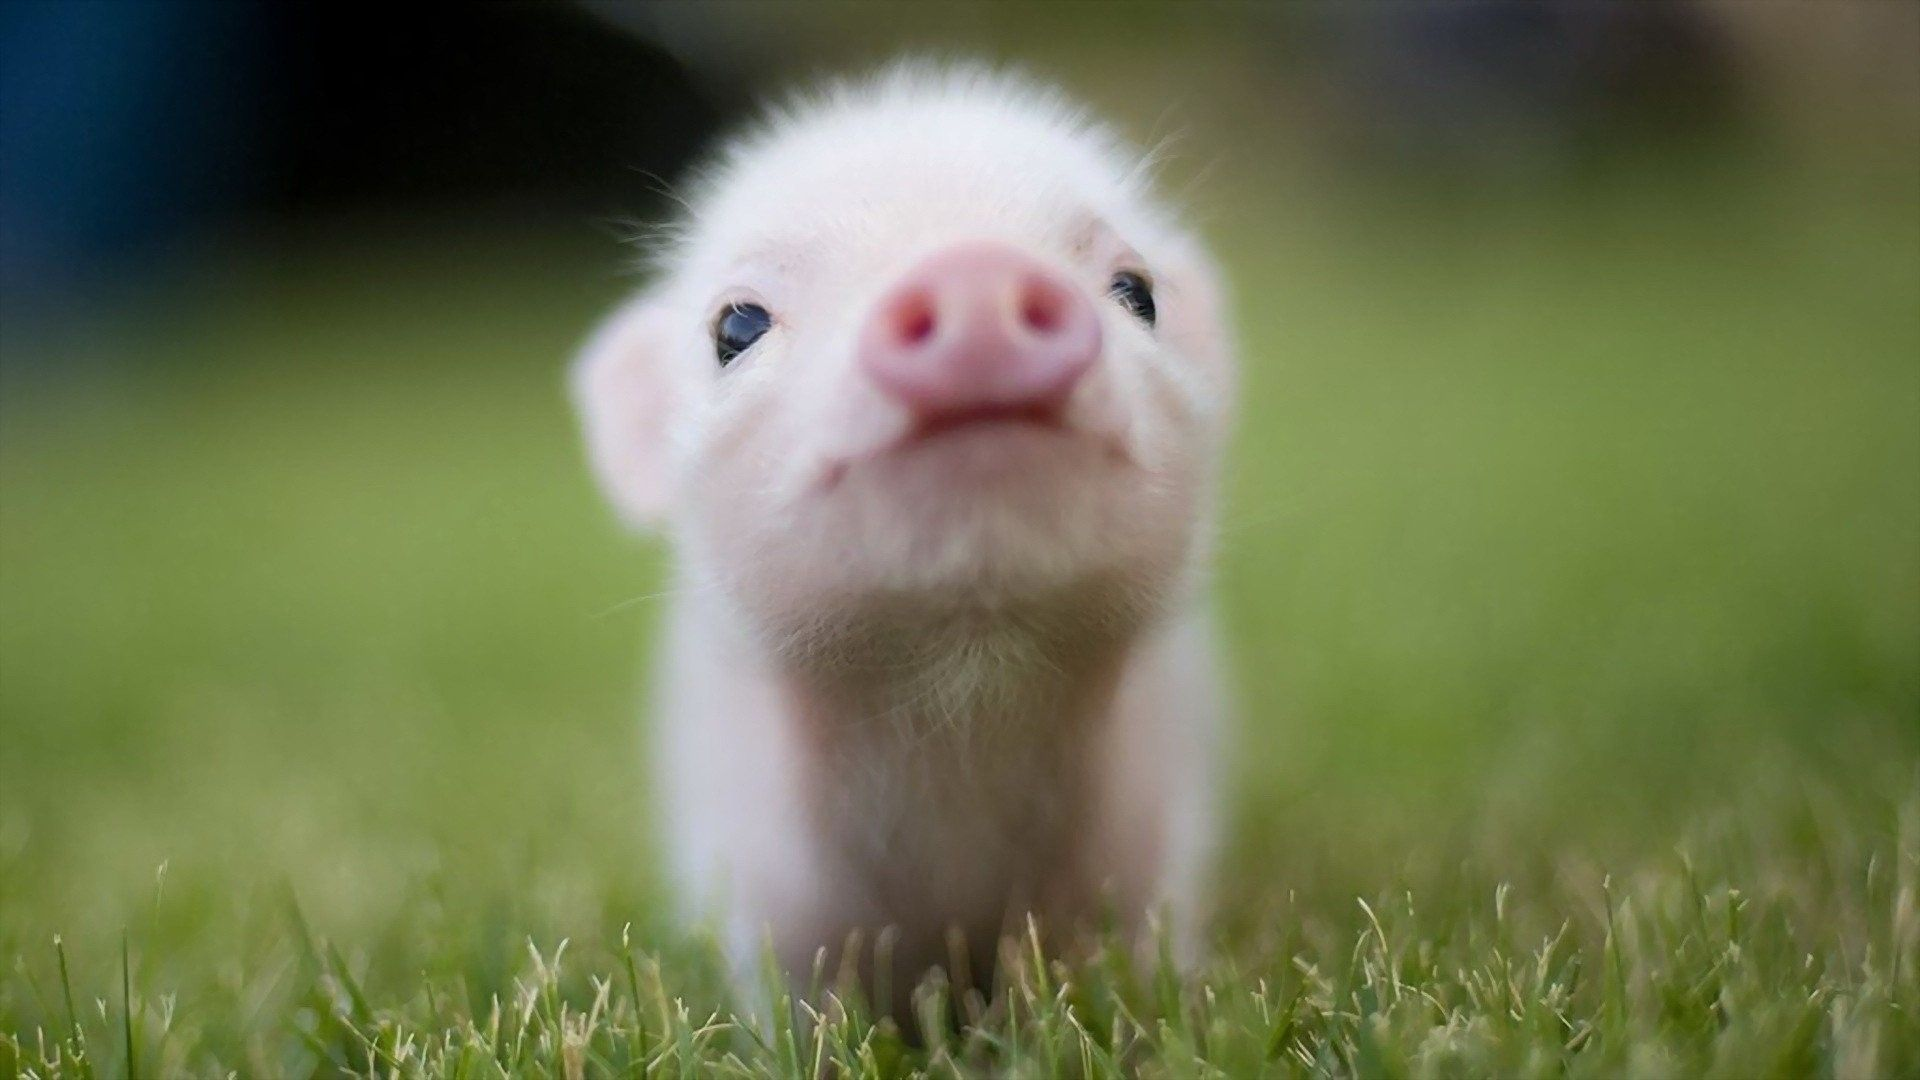 Baby Pig Wallpapers   Top Baby Pig Backgrounds   WallpaperAccess 1920x1080